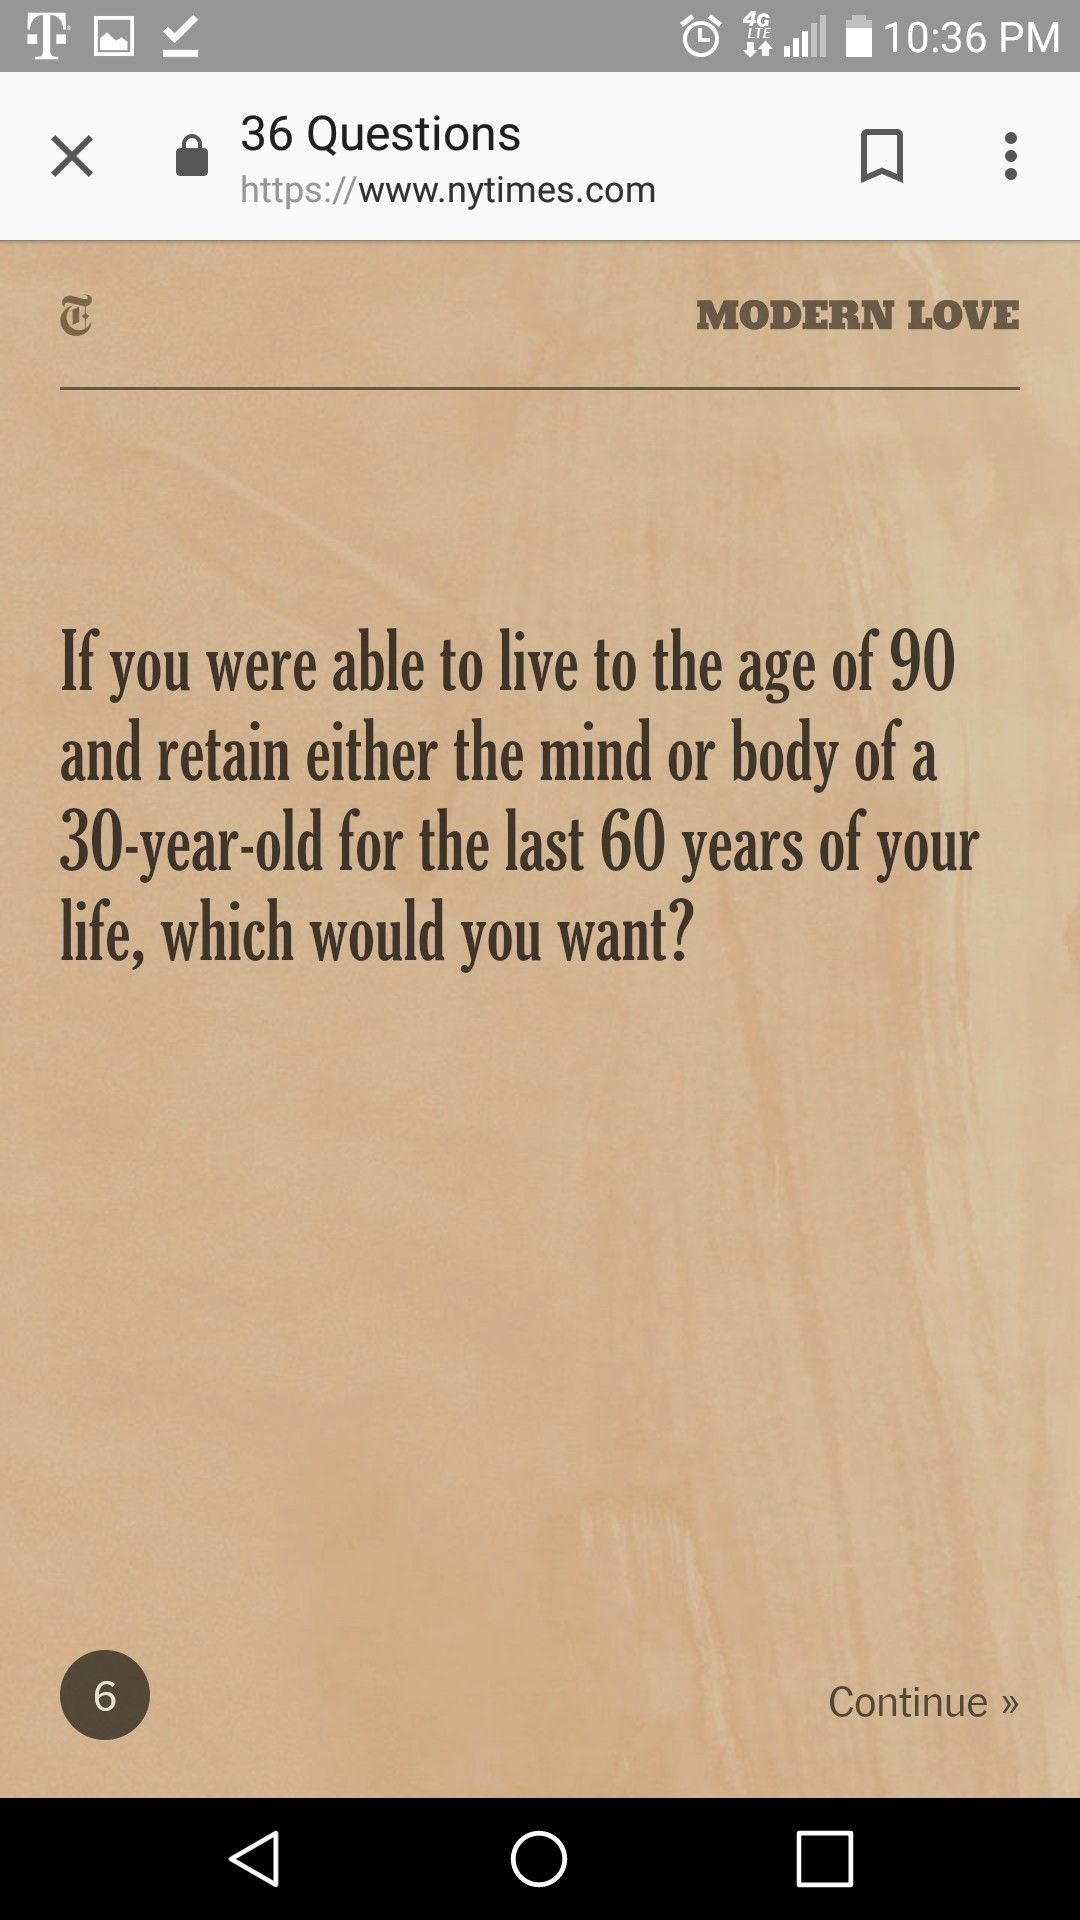 Pin By Eva Rodriguez On Ny Times 36 Questions To Fall In Love Modern Love This Or That Questions Mind Body